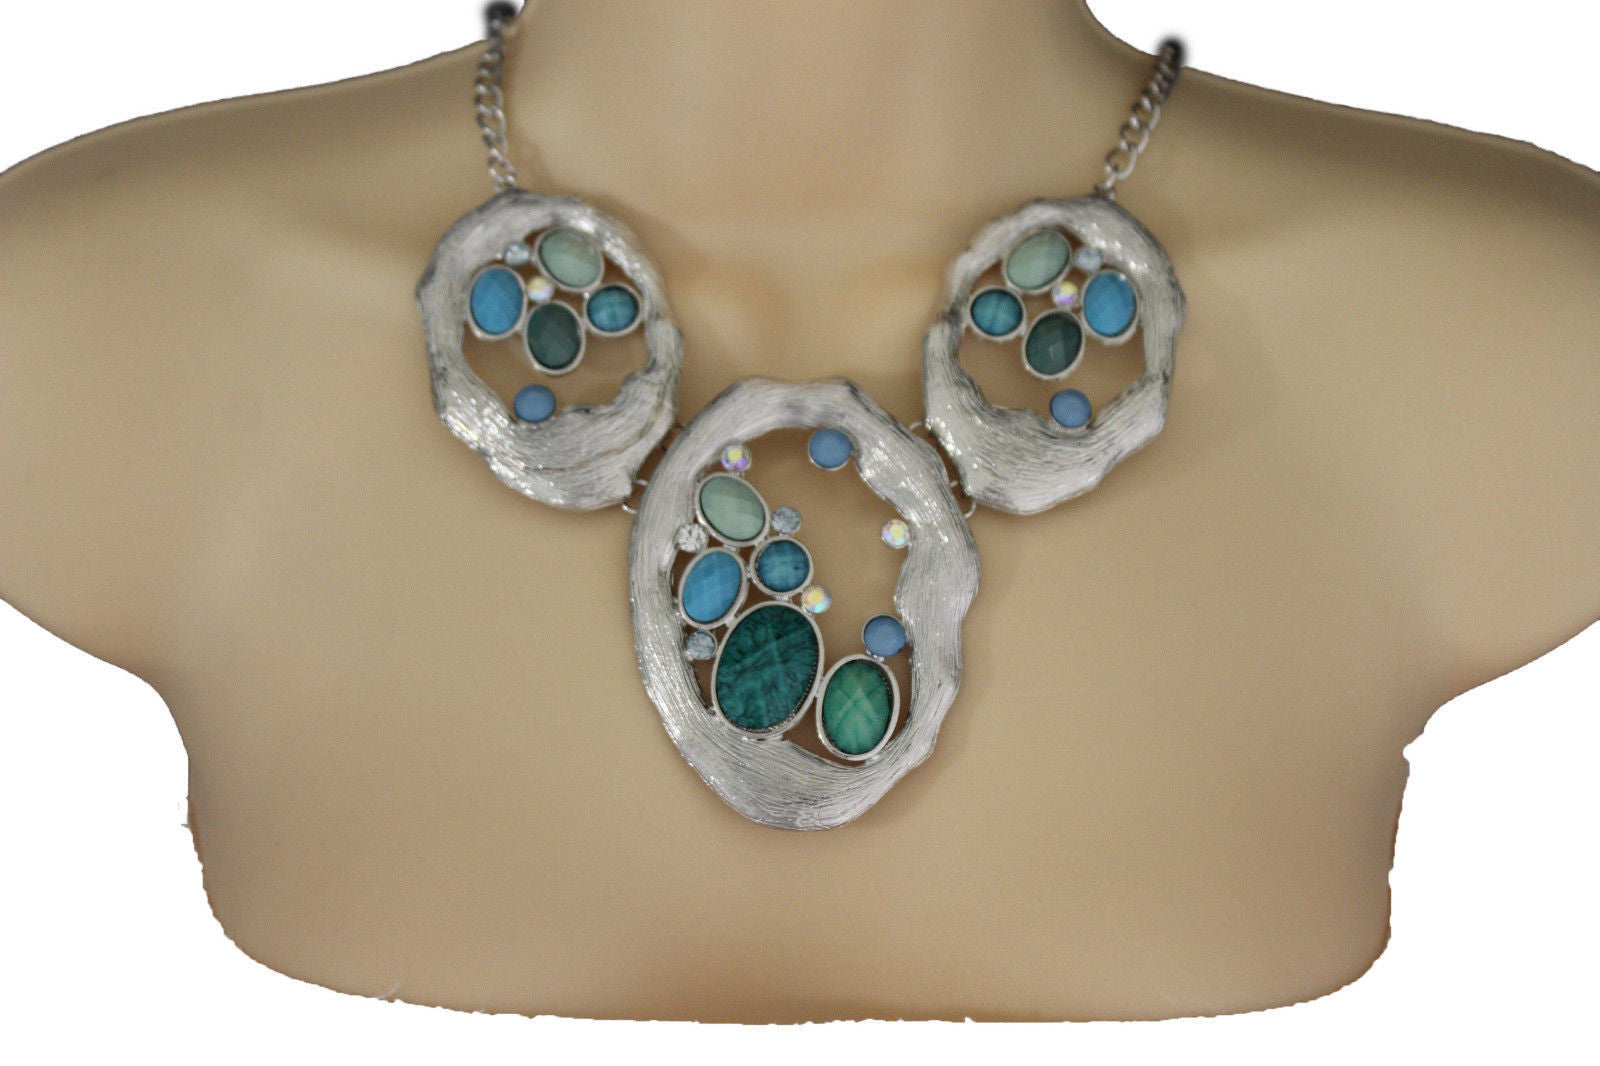 Silver Metal Chains Nautical Charms Turquoise Blue Beads Necklace Earrings  Set New Women Accessories